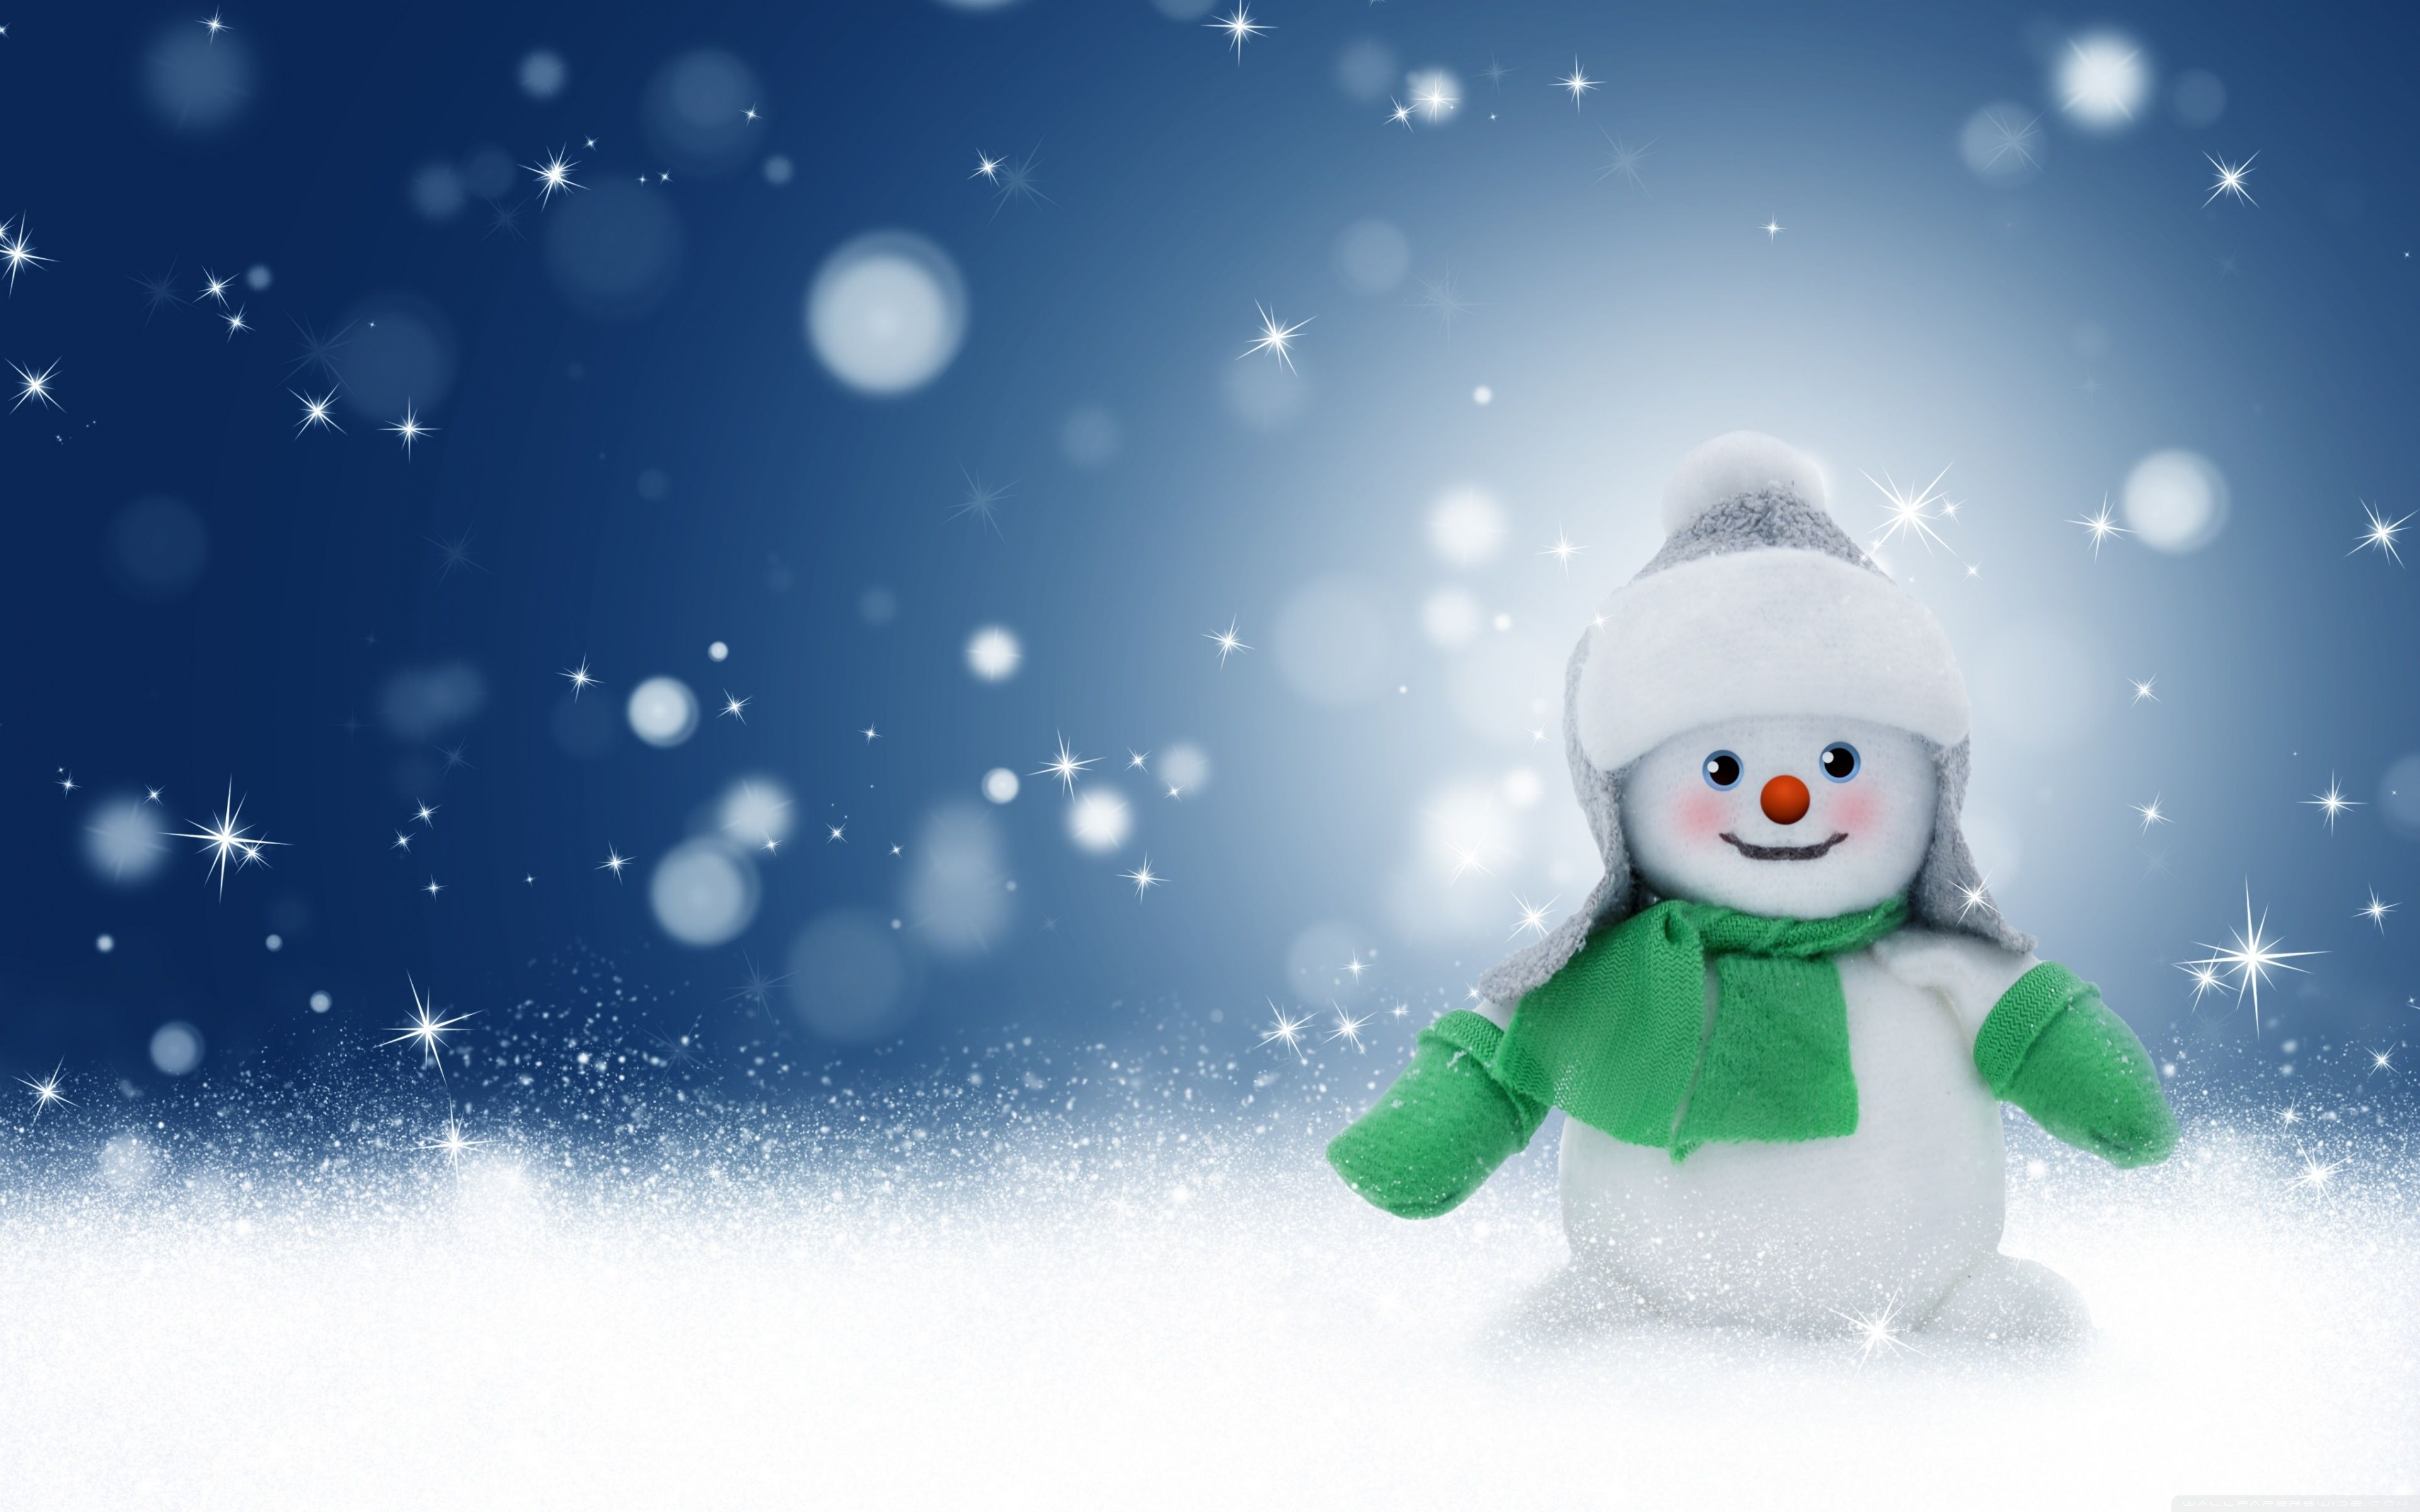 Cute Christmas Snowman Wallpapers Top Free Cute Christmas